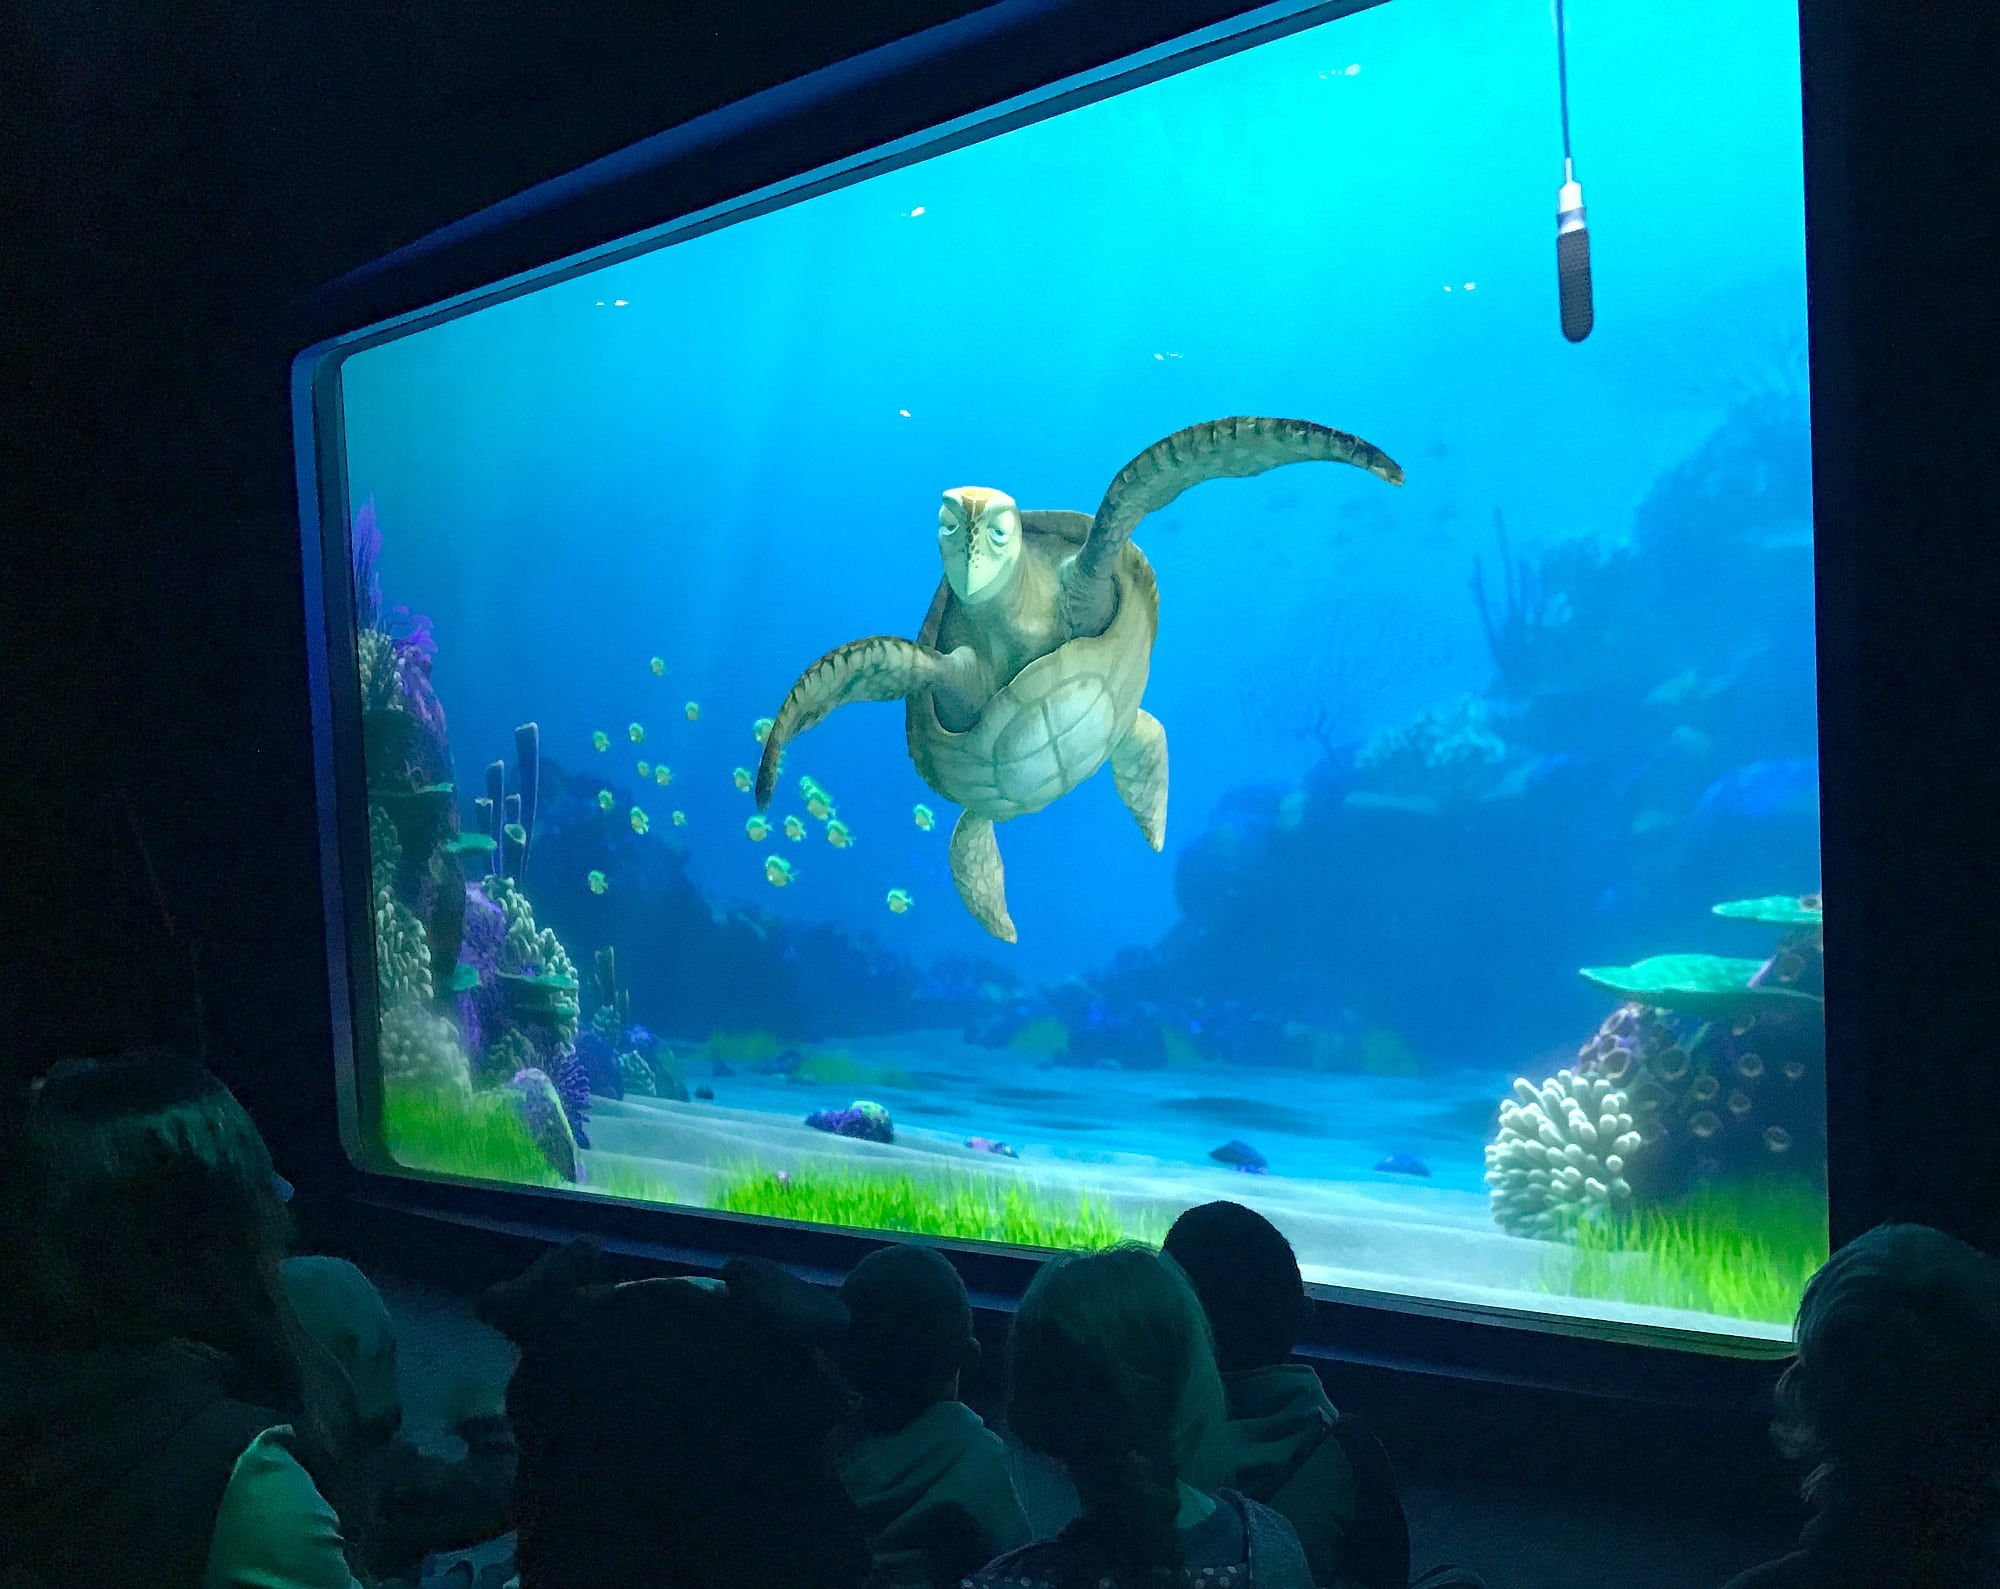 Kids learn about sea turtles and the ocean at Turtle Talk with Crush ~ Educational Things to Do at Disneyland with Kids